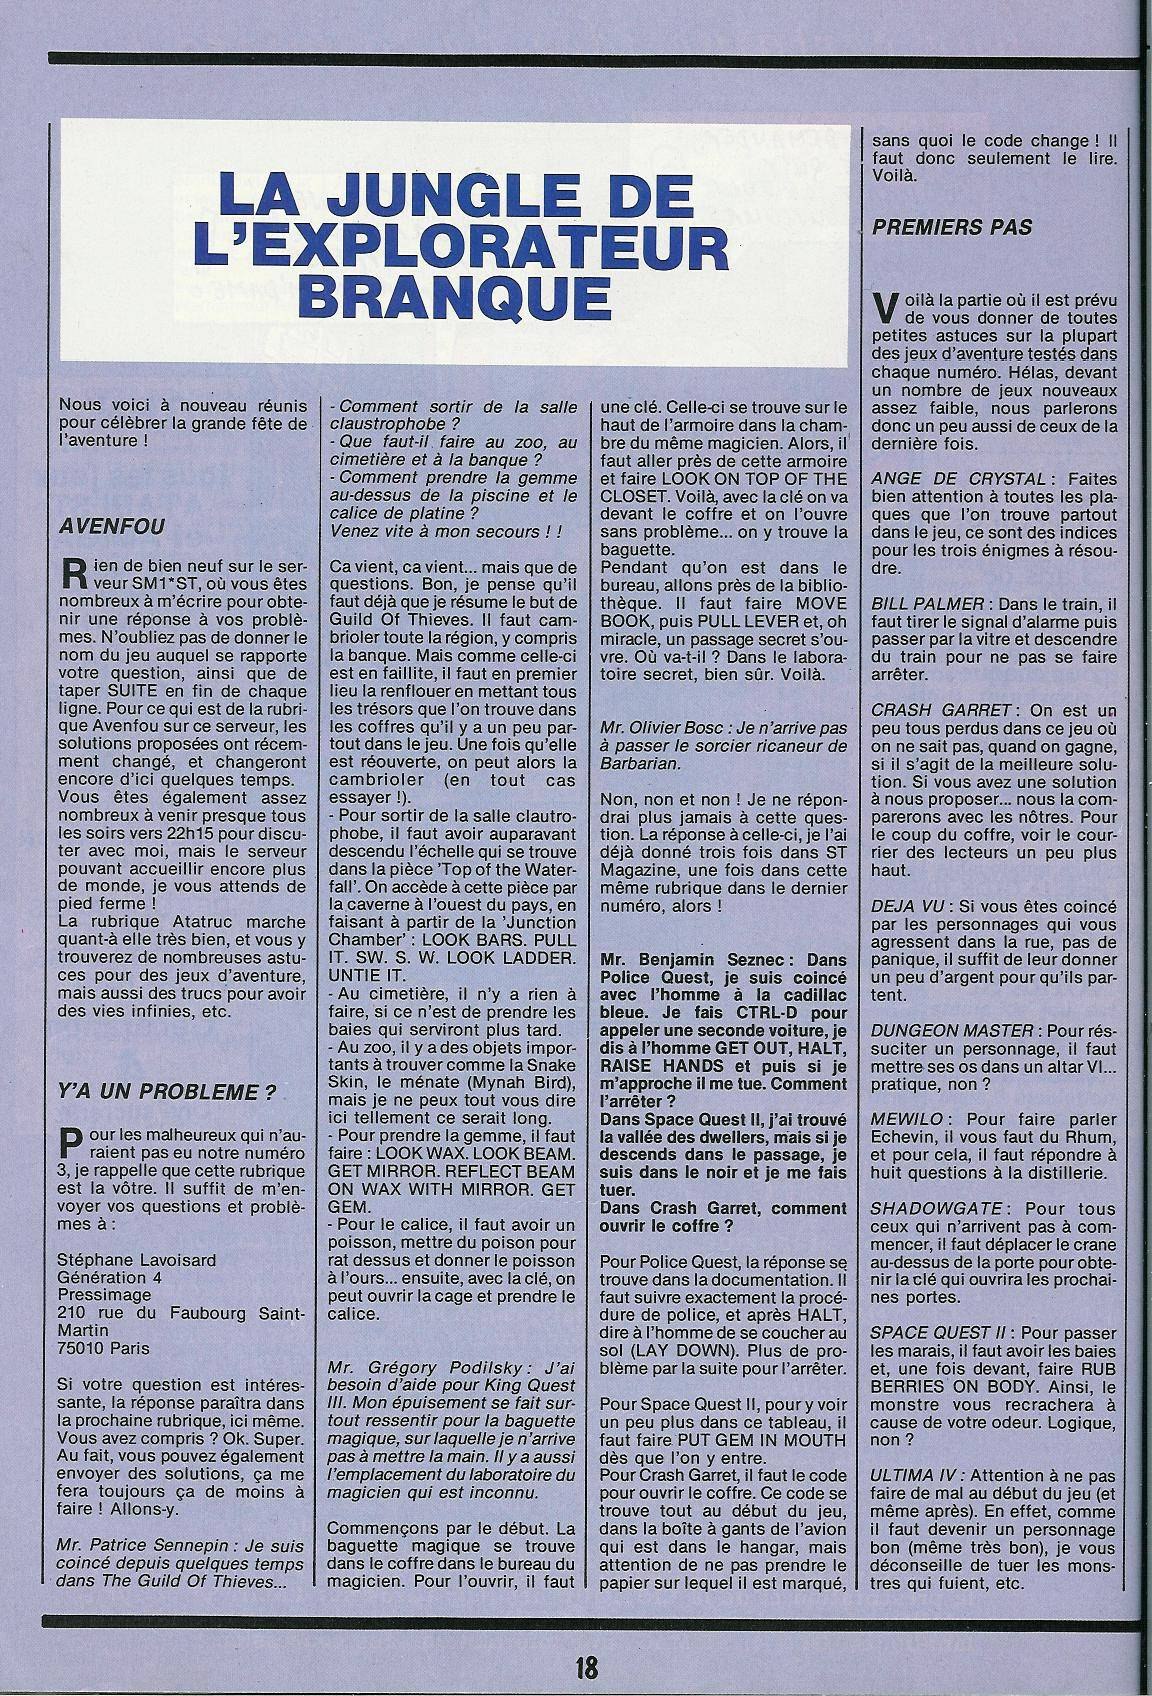 Dungeon Master Hints published in French magazine 'Gen4', Issue #4, May-August 1988, Page 18